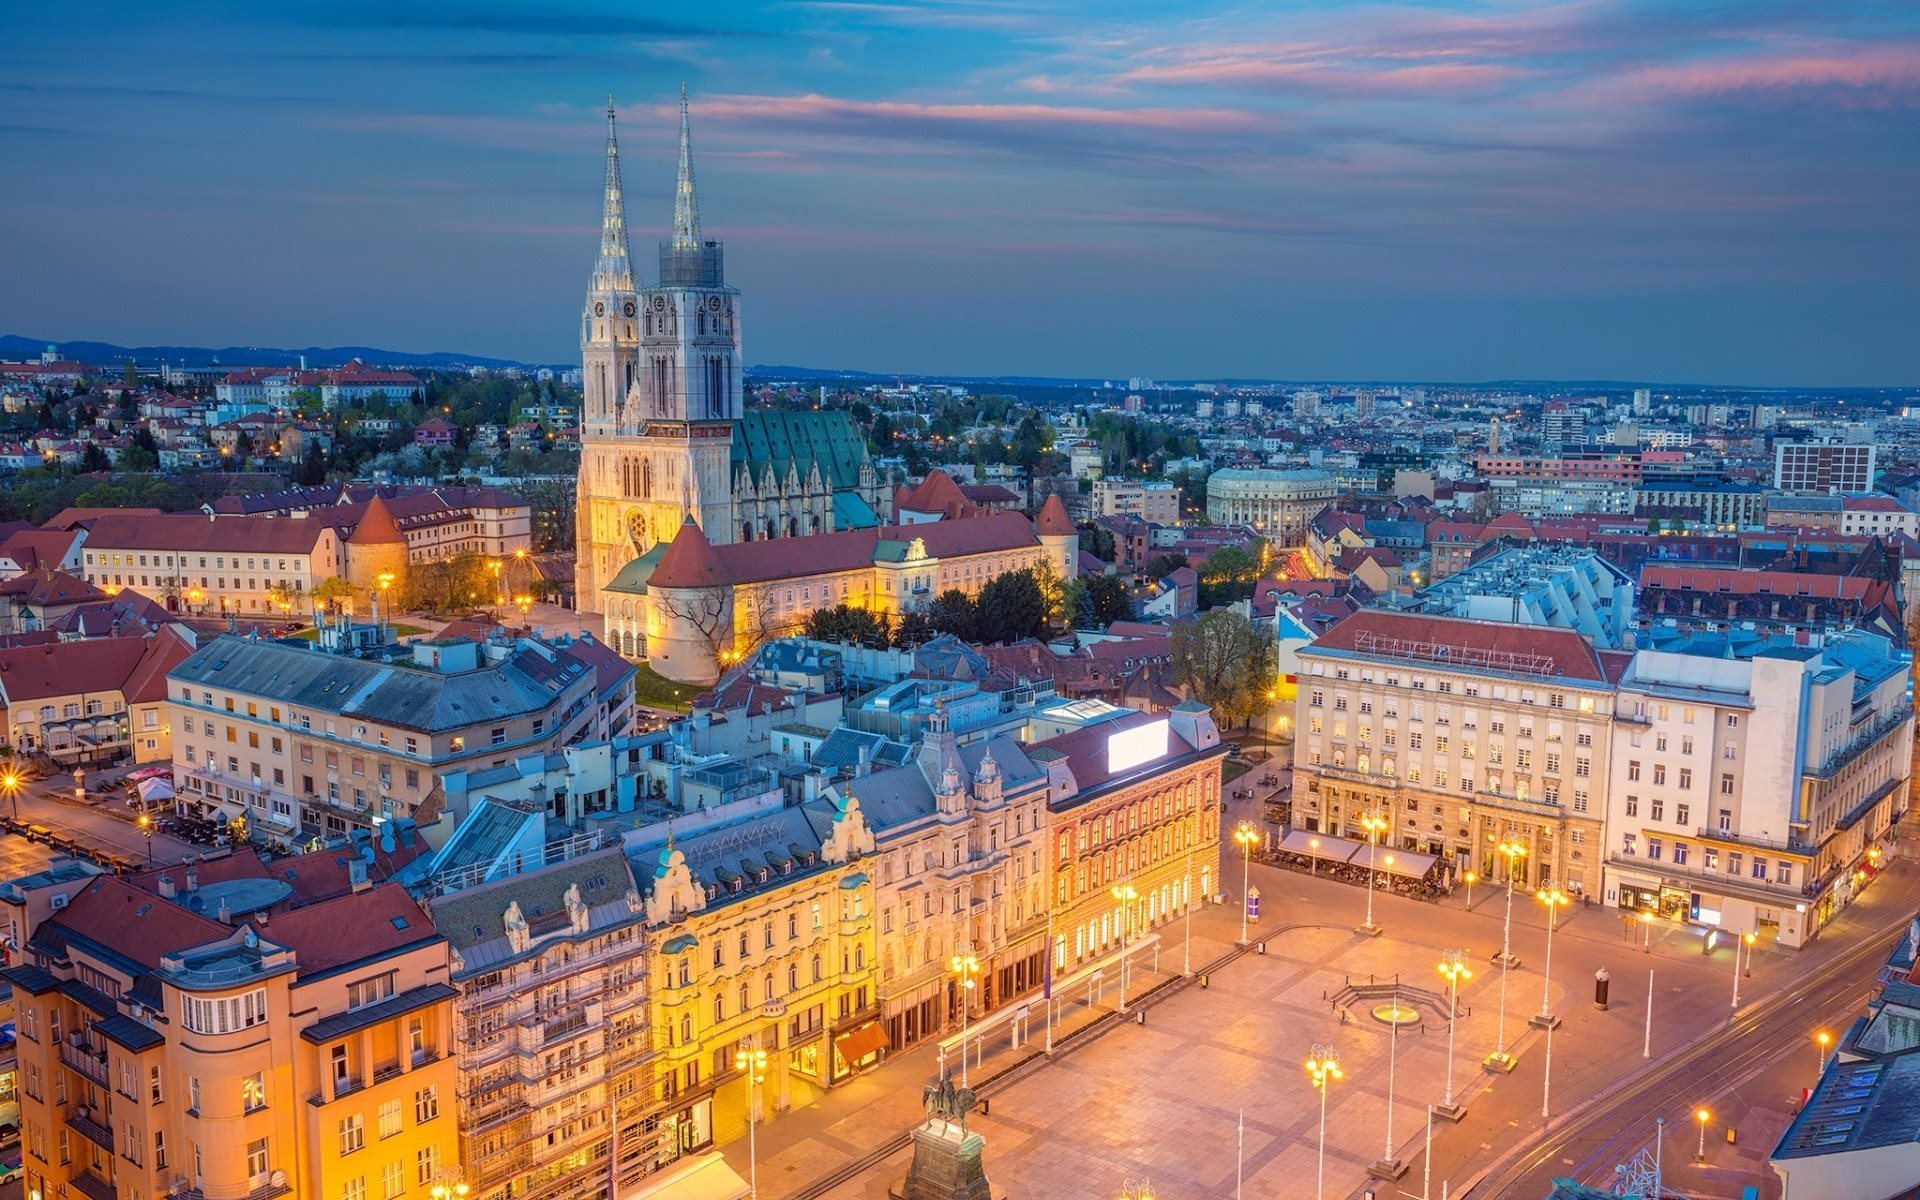 Zagreb, Croatia - Monterrasol small group tours to Zagreb, Croatia. Travel agency offers small group car tours to see Zagreb in Croatia. Order small group tour to Zagreb with departure date on request.